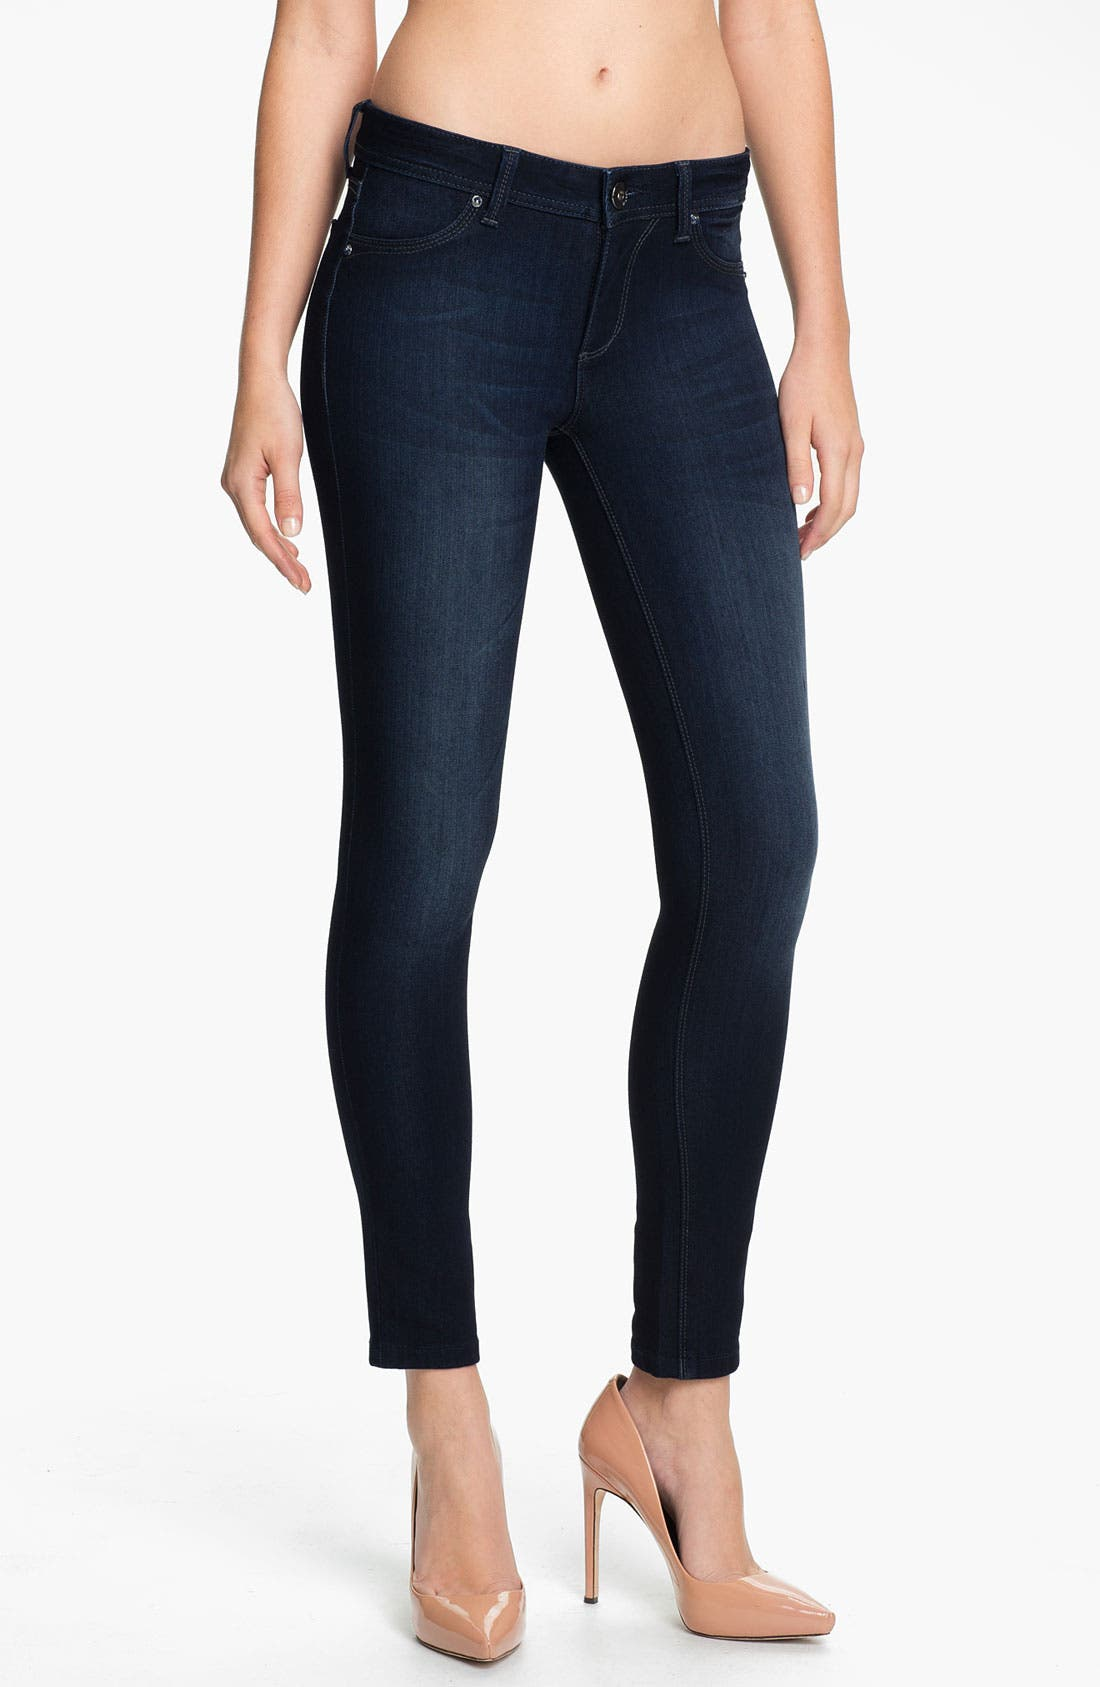 Main Image - DL1961 'Emma' Power Legging Jeans (Bloom)